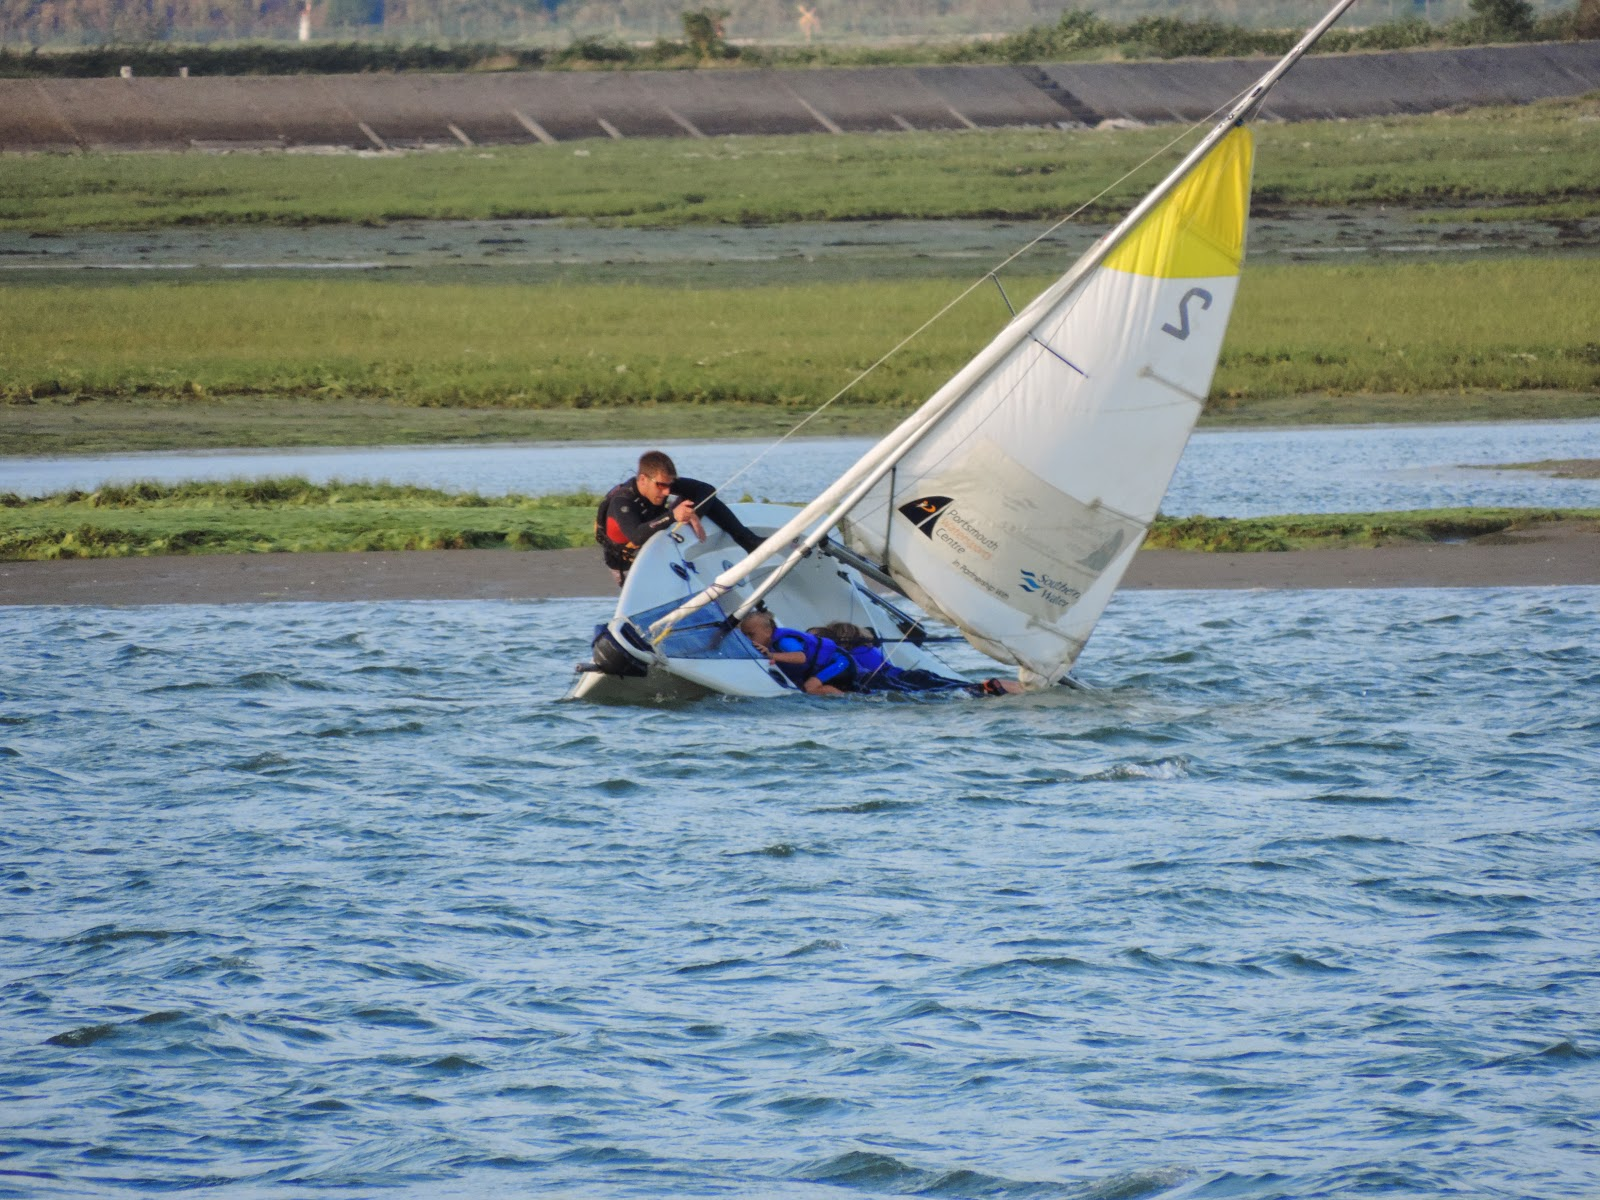 portsmouth watersports inboard boating training capsized boat